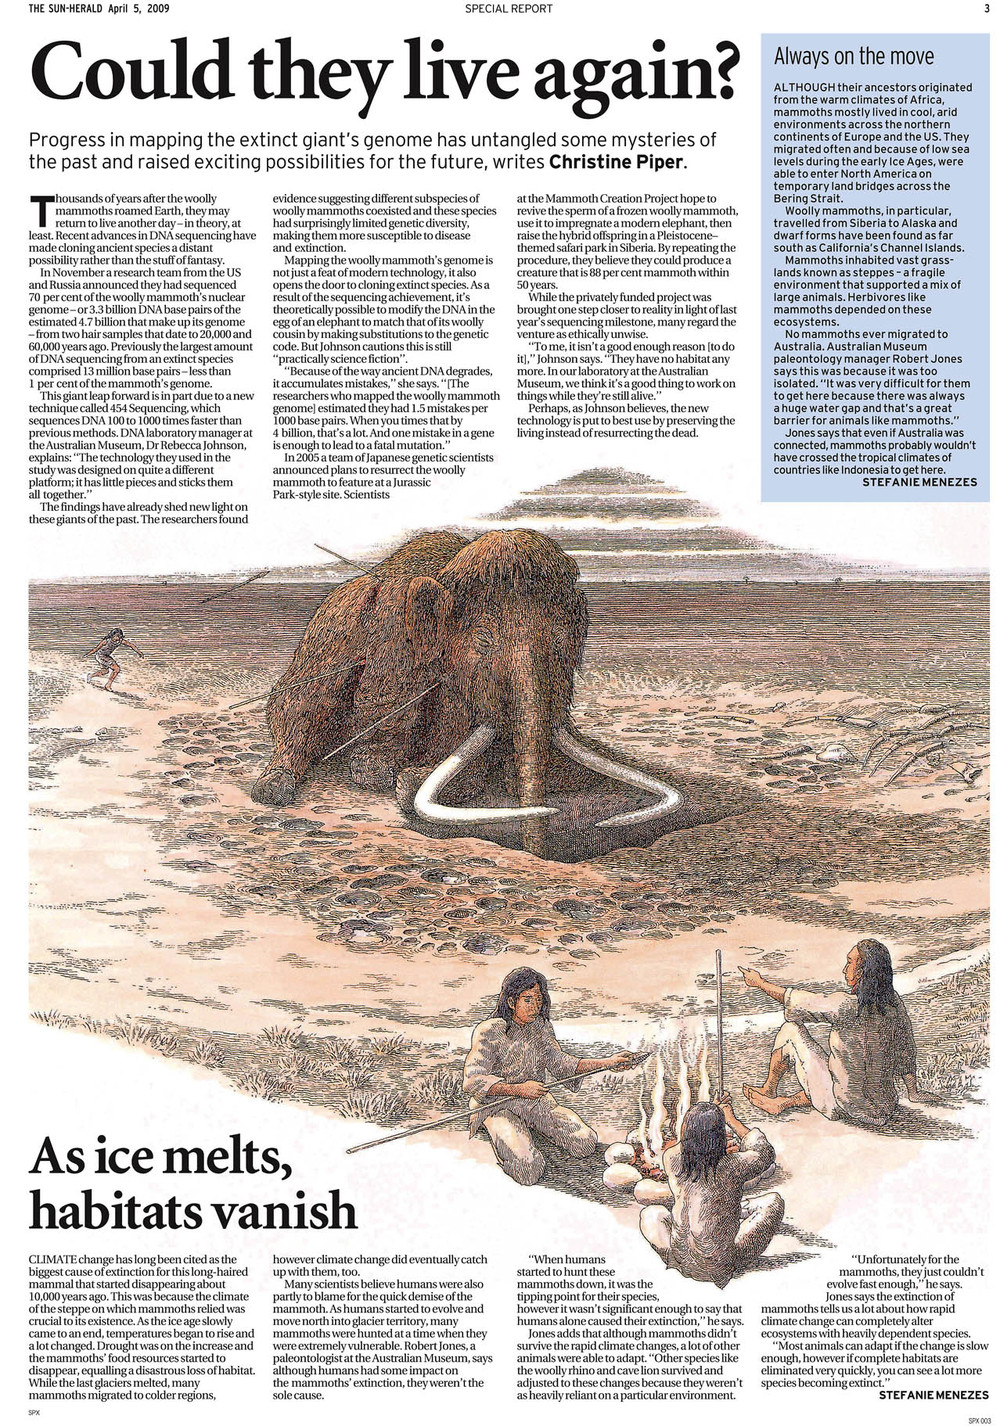 05_SunHerald_WoollyMammoth205APR09_MR.jpg